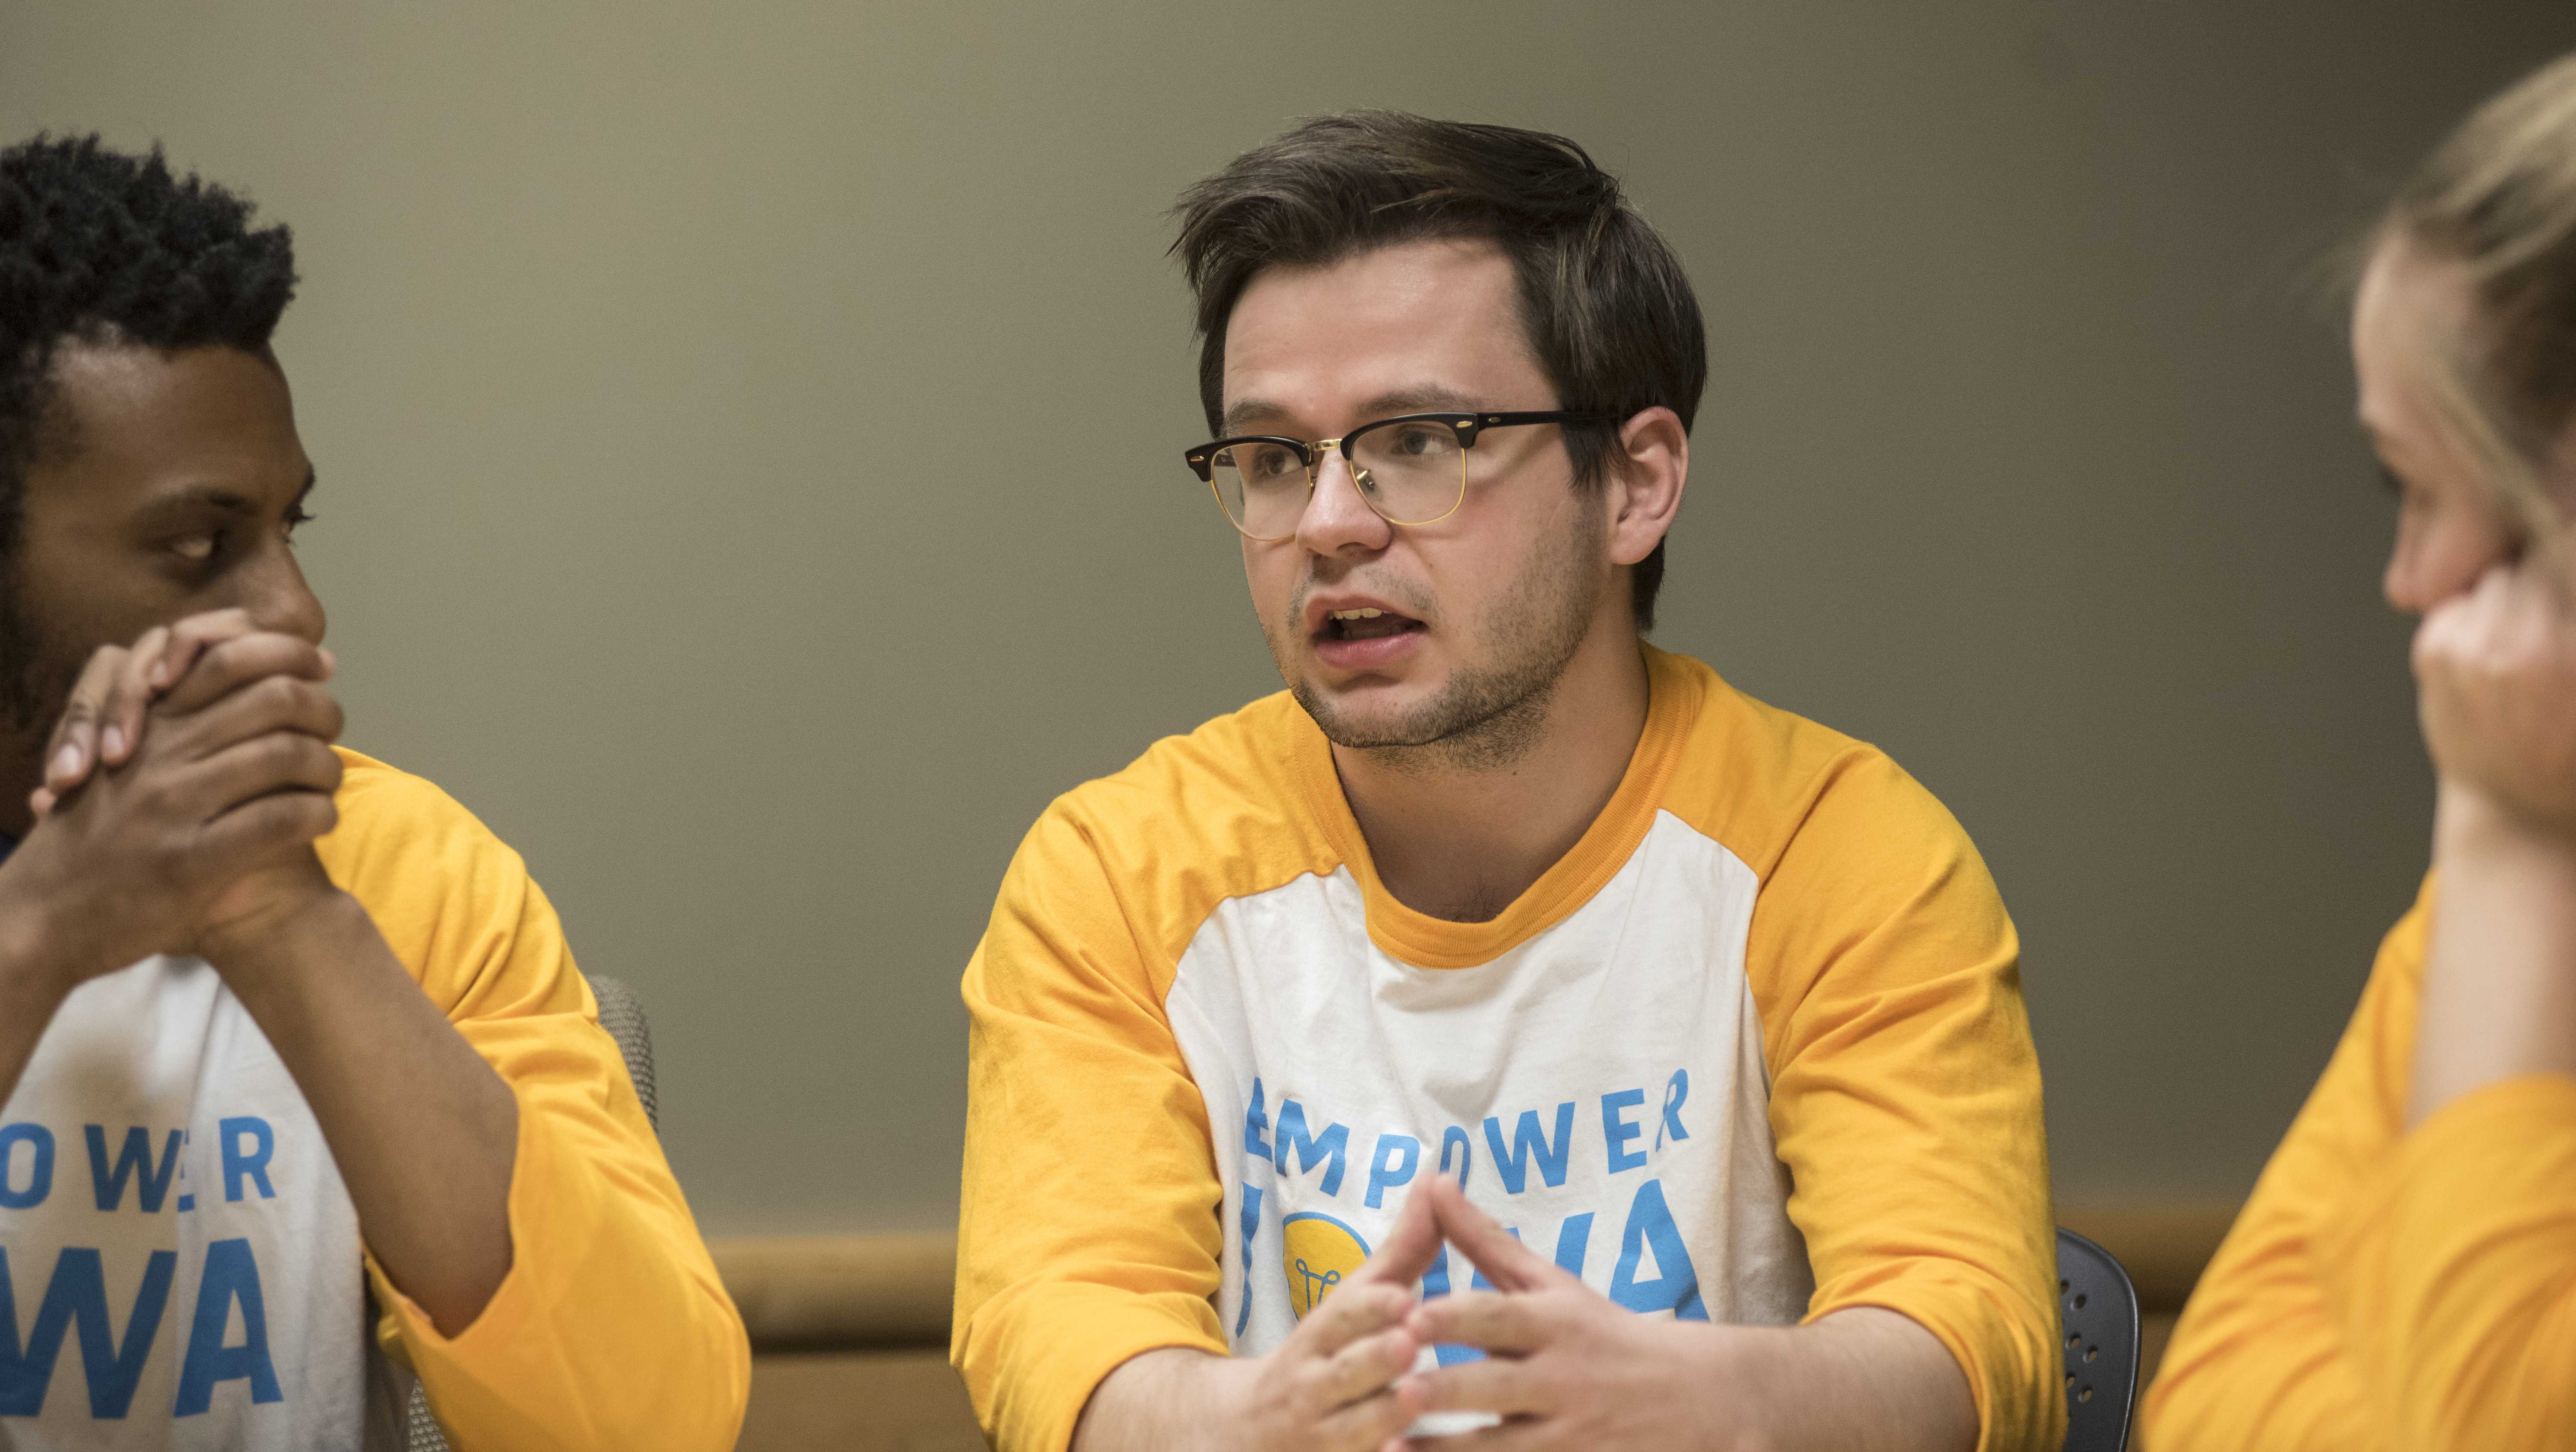 From left: Nate Robinson, Ben Nelson, and Katherine Baer, members of the UISG ticket Empower Iowa speak to the Daily Iowa editorial staff in the Adler Journalism Building on Monday, March 19, 2018. Empower Iowa is one of four groups on the ticket for the 2018-19 year UISG elections. (Ben Allan Smith/The Daily Iowan)